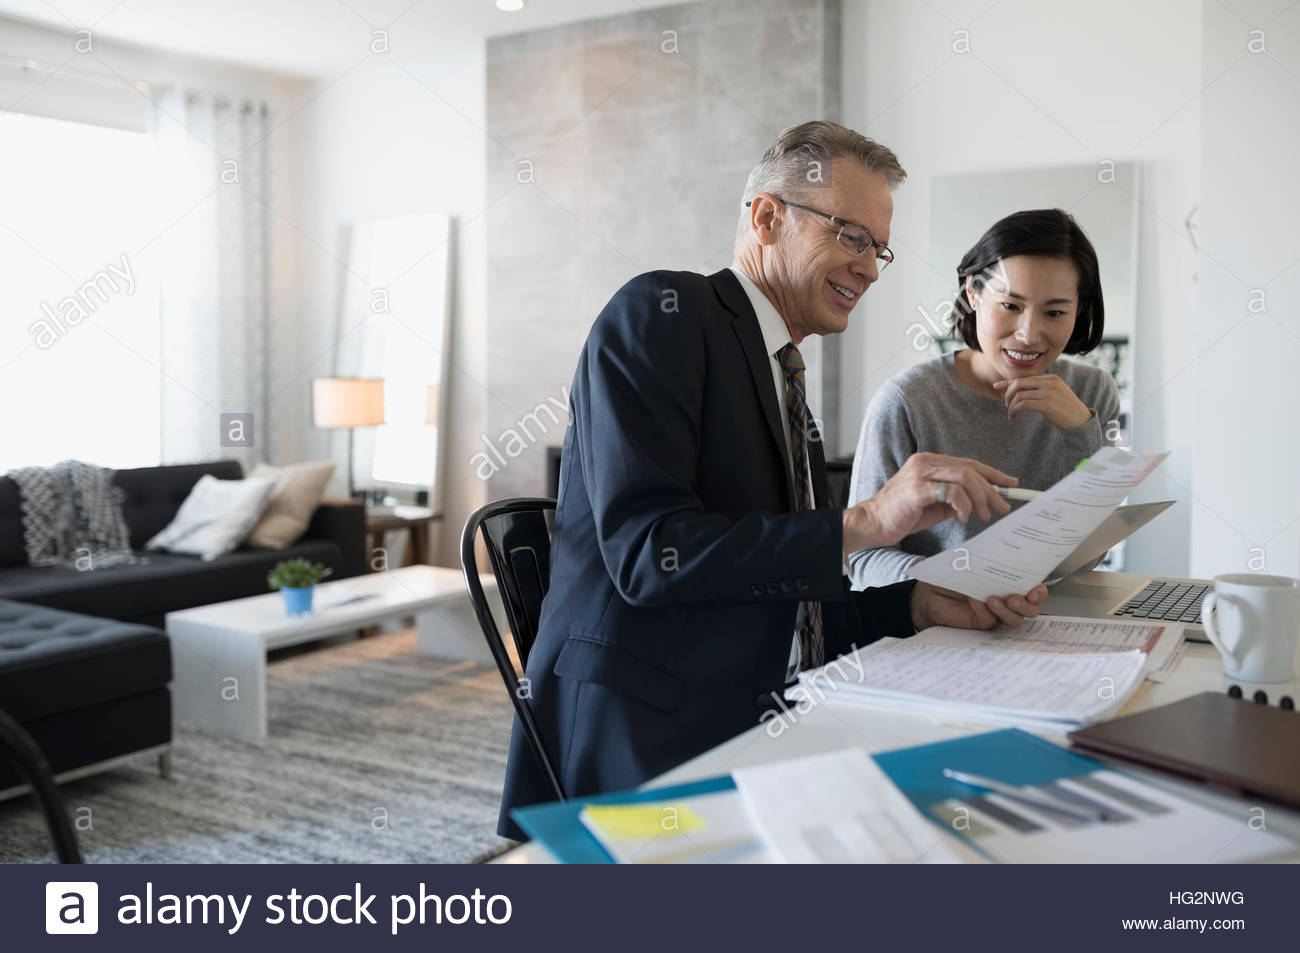 Financial advisor and woman with laptop meeting in dining room - Stock Image